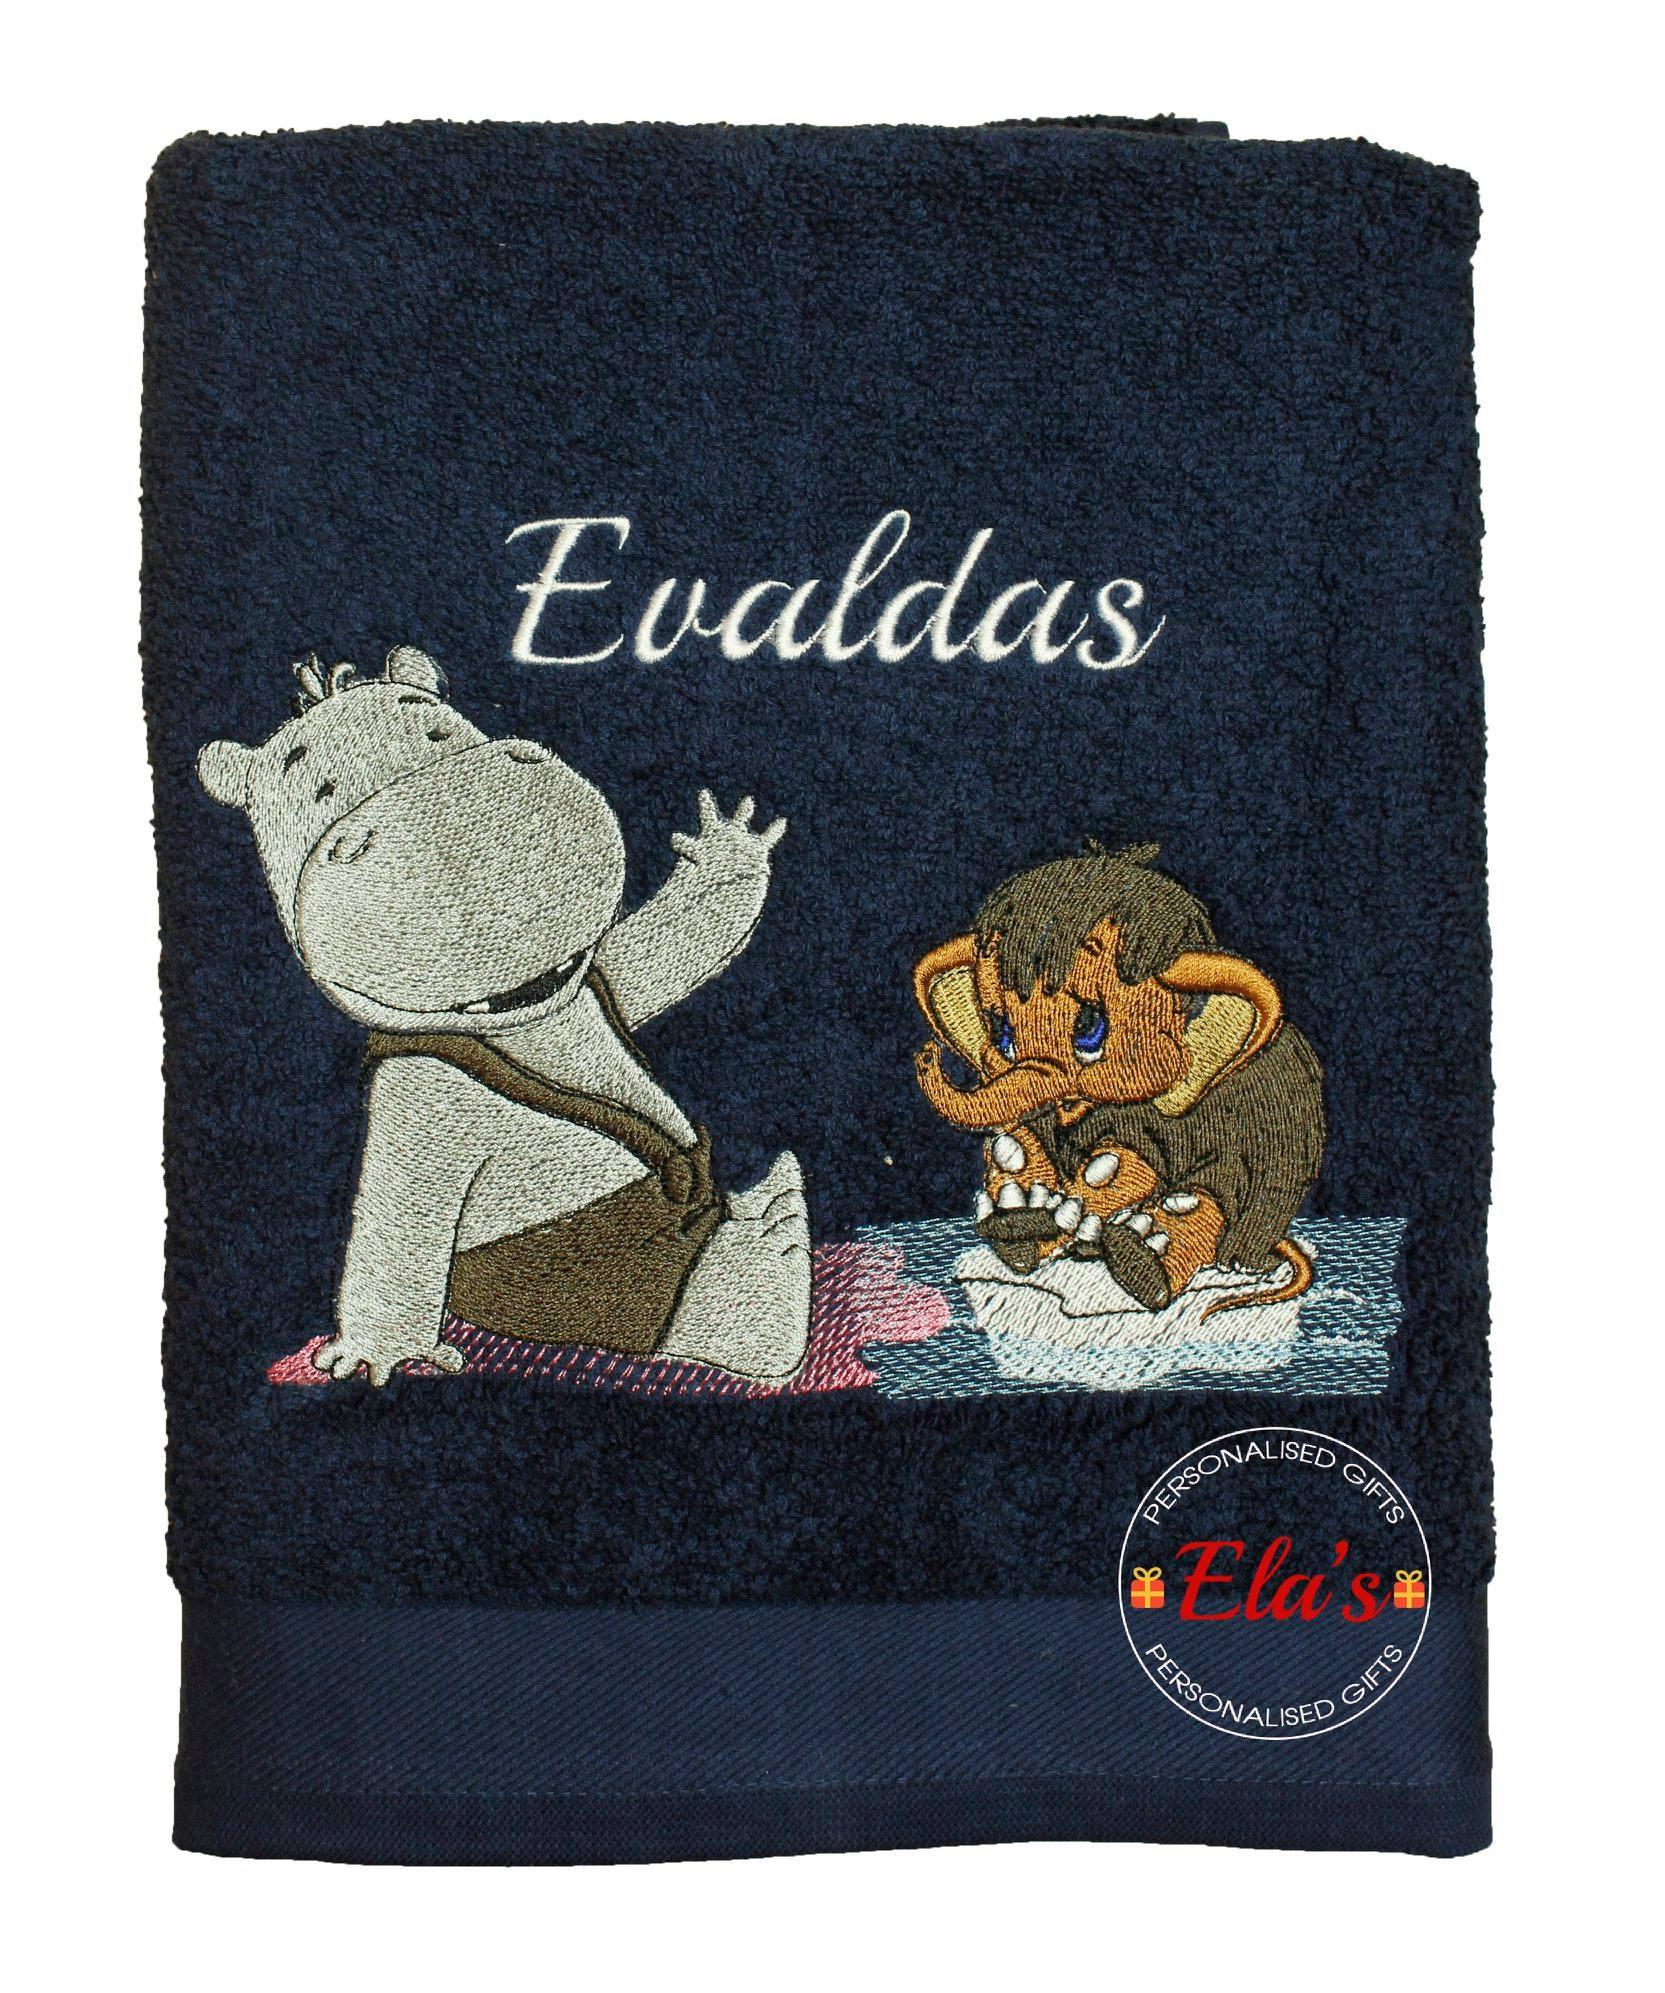 Embroidered towel with Mammoth free design